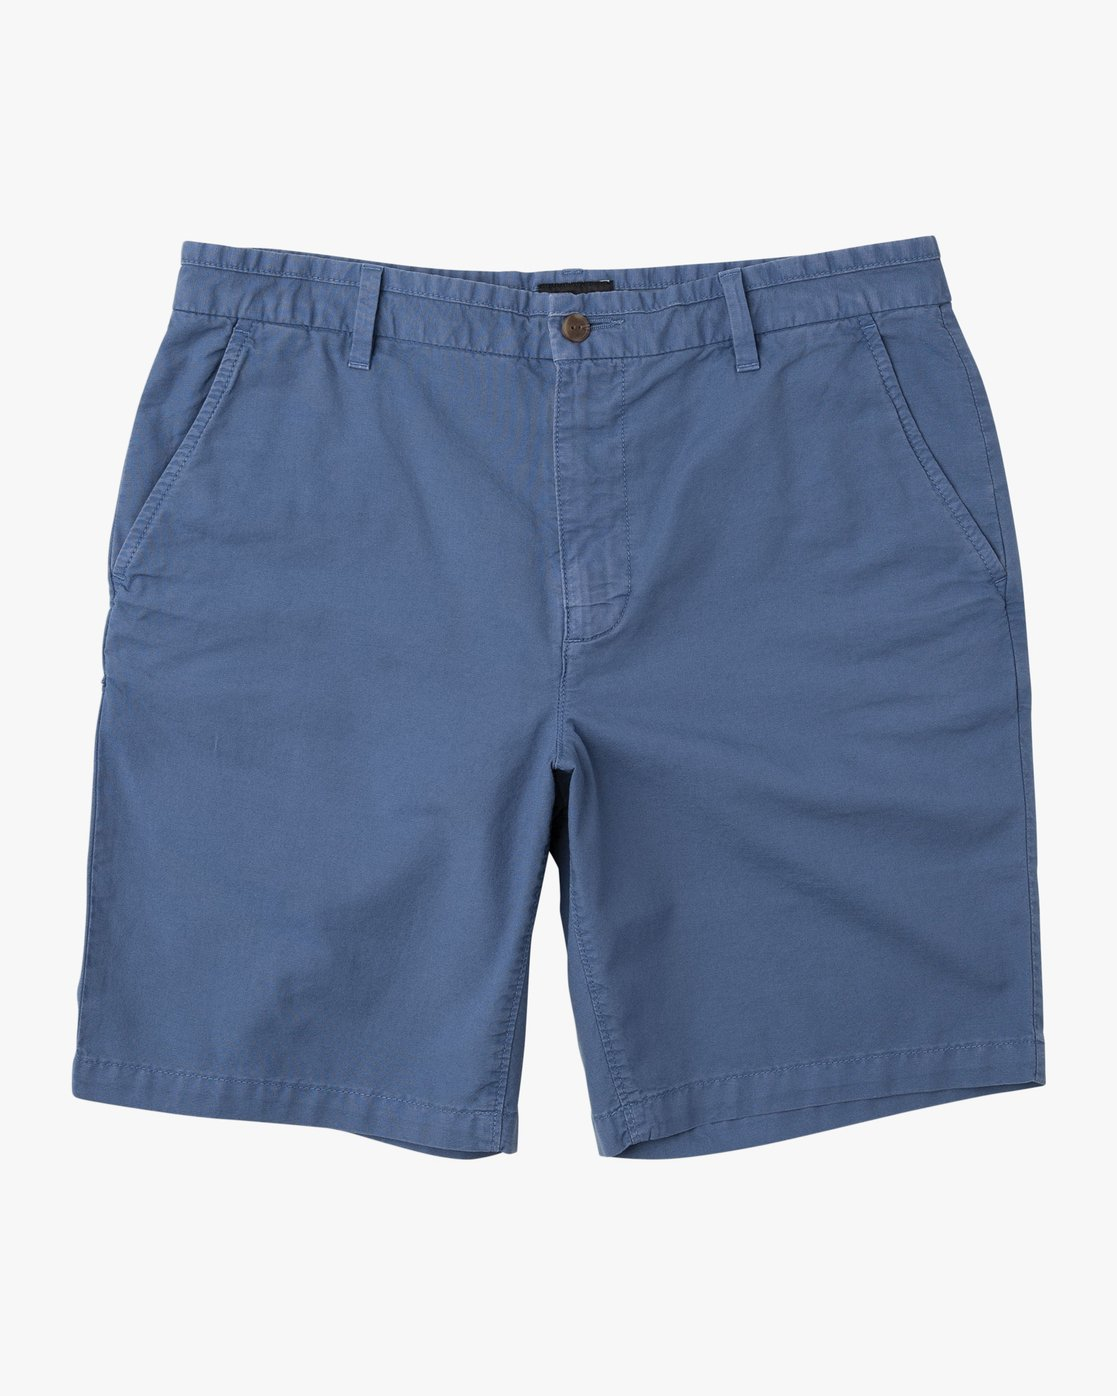 0 Butterball Over Dye Short Blue M205PRBU RVCA